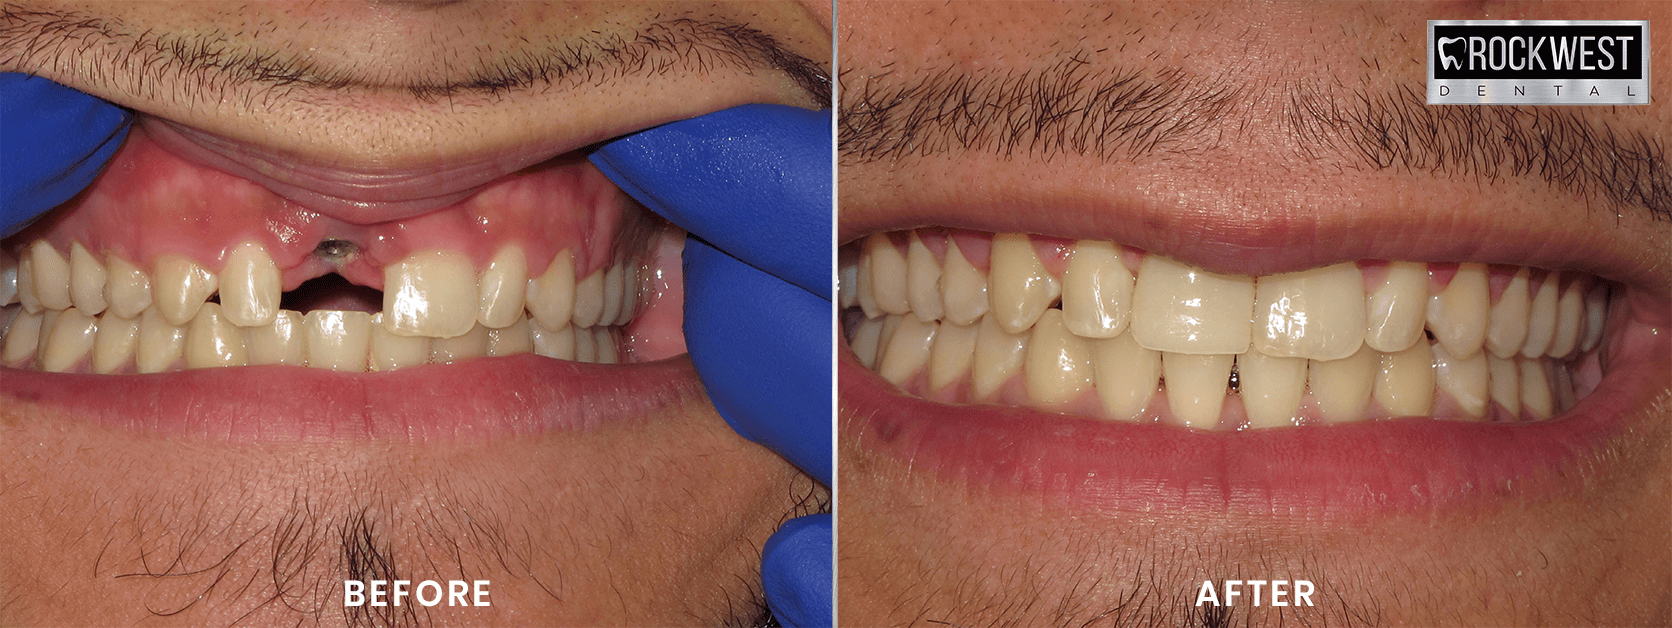 Before and After Single Implant Replacement Mississauga